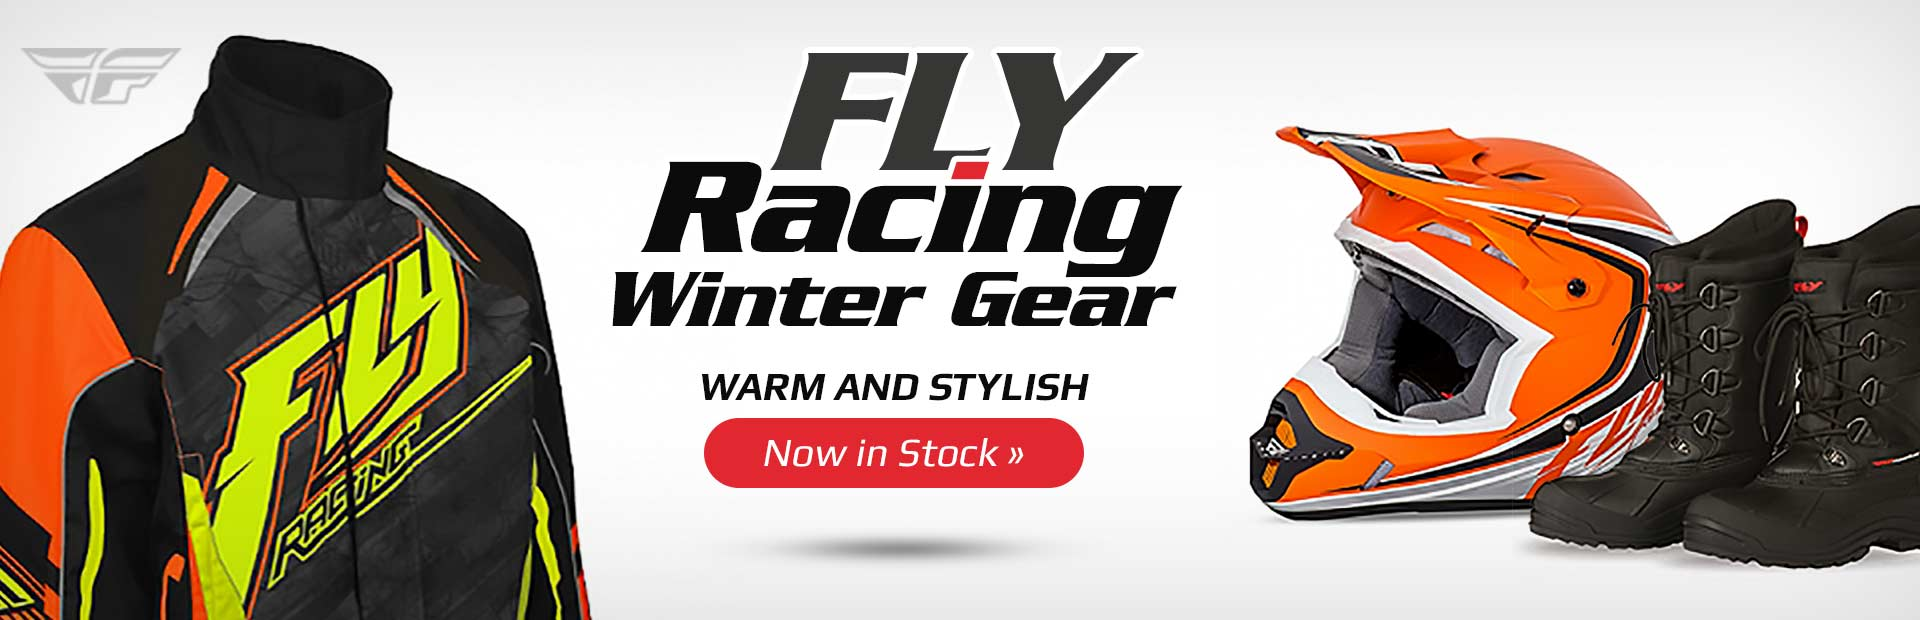 Fly Racing Winter Gear: Click here to shop online.